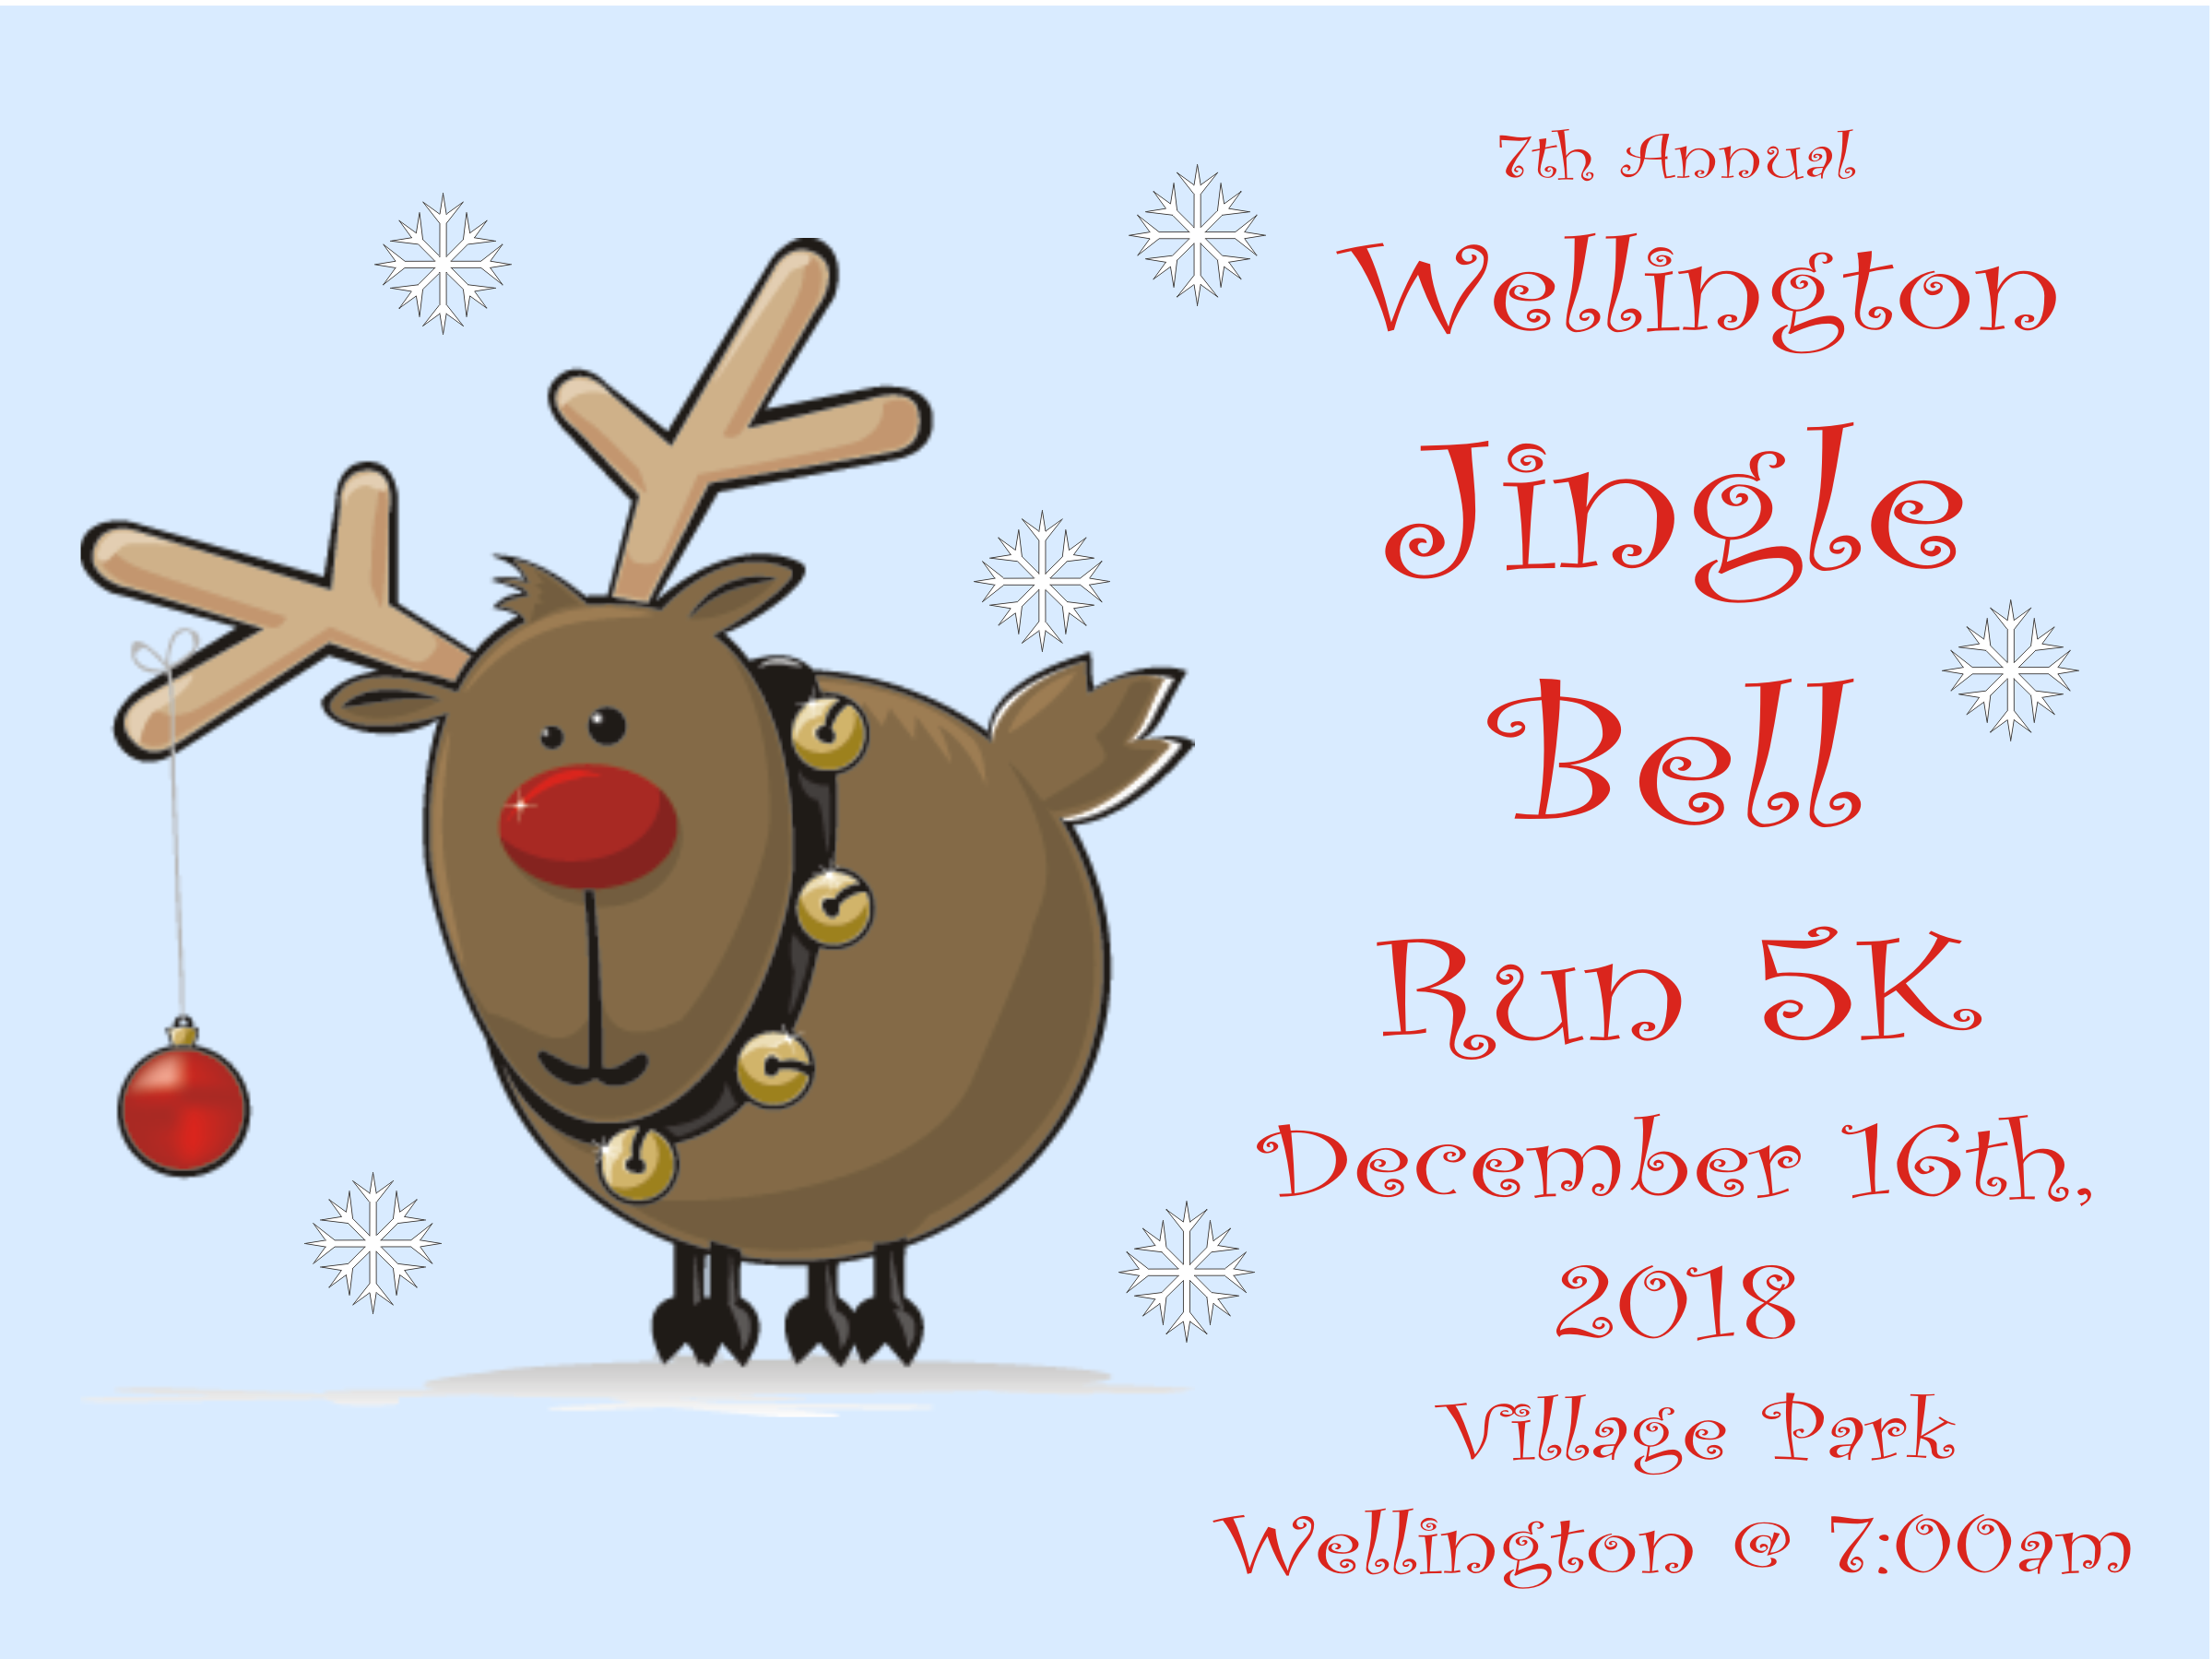 Wellington Jingle Bell